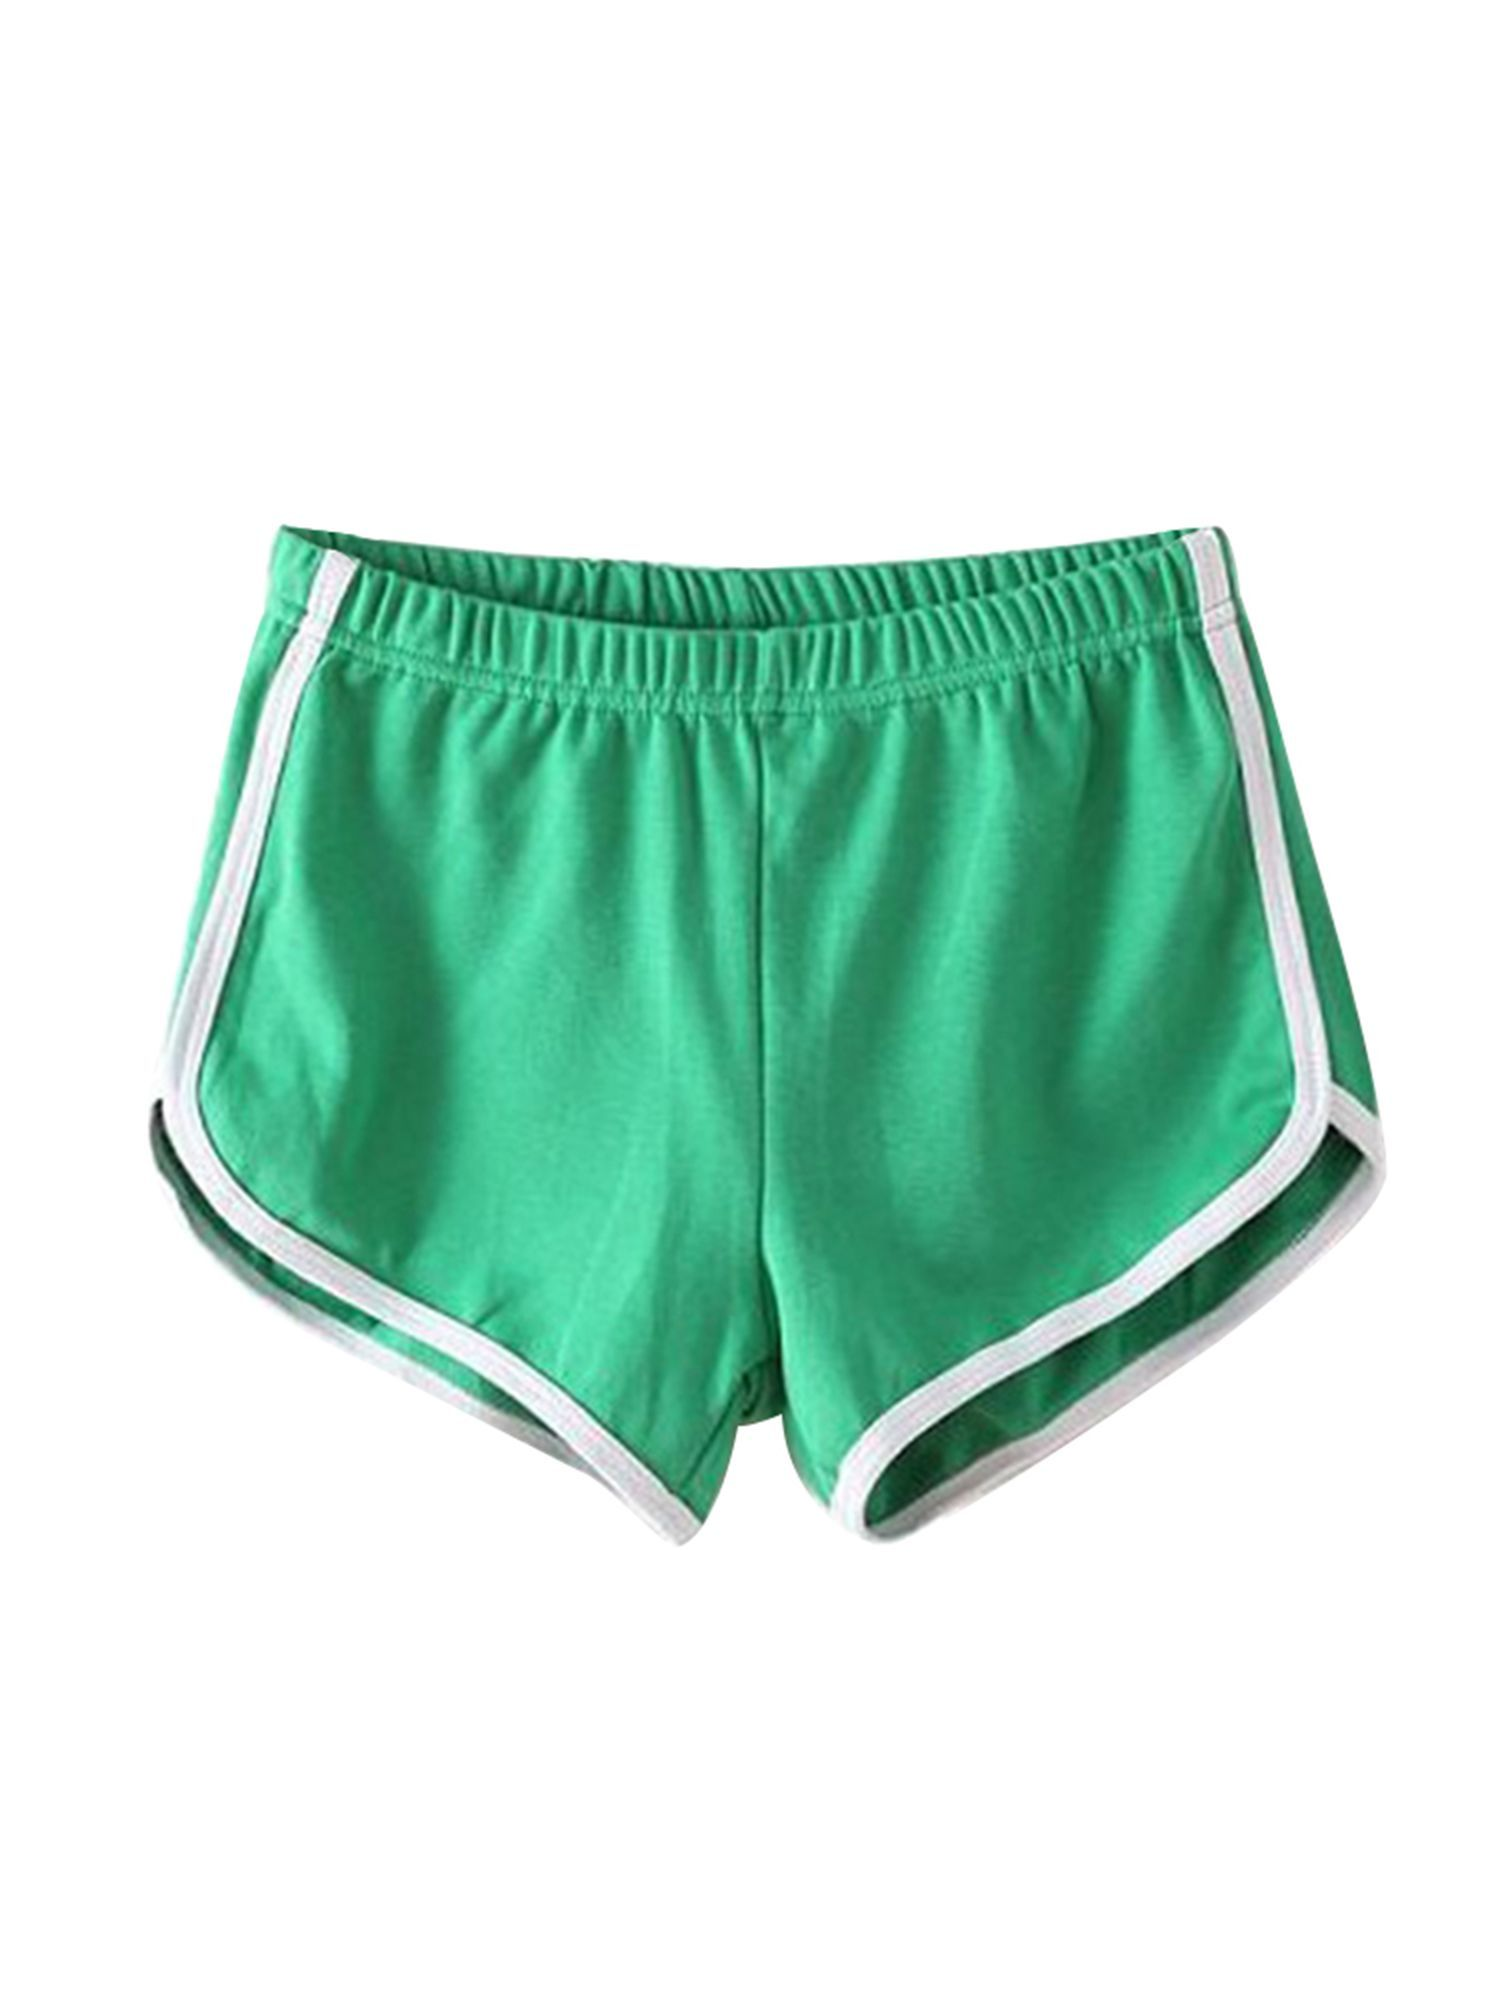 Casual Beach Shorts for Women Yoga Fitness Shorts Striped Sports Gym Running Jogging Lounge Hot Pant...